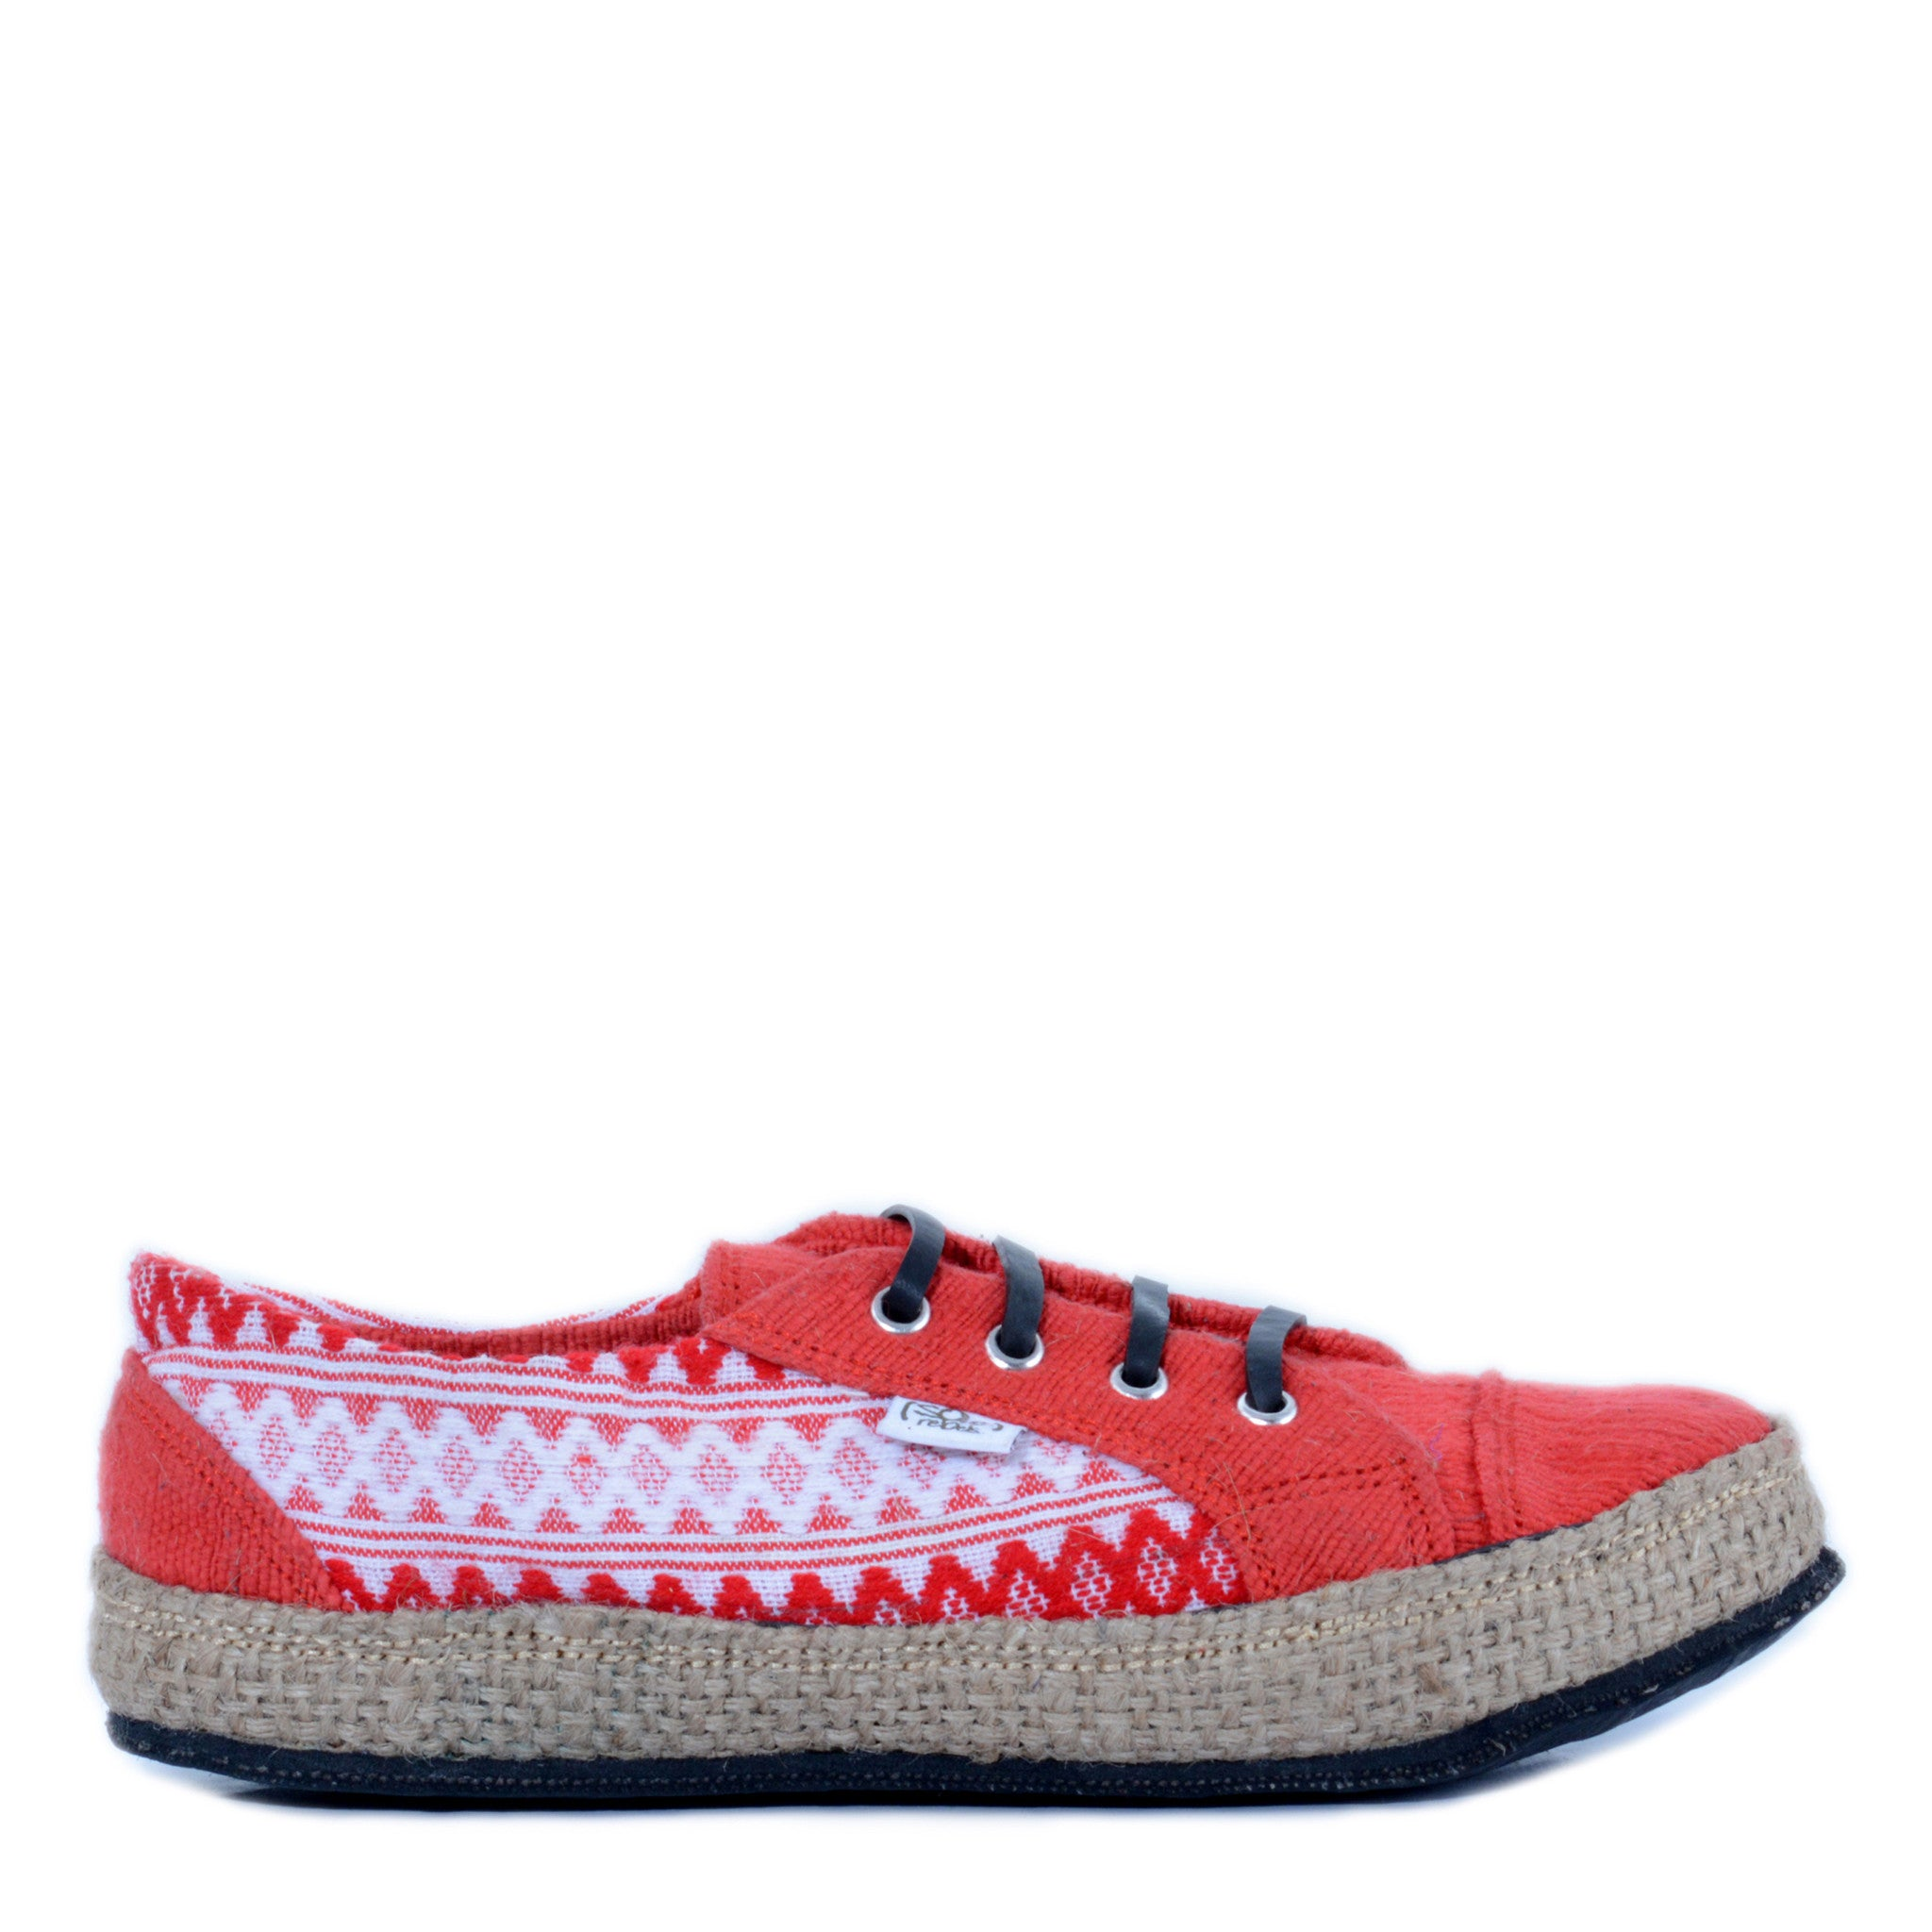 solerebels Red urban runner kBa Lace-Ups